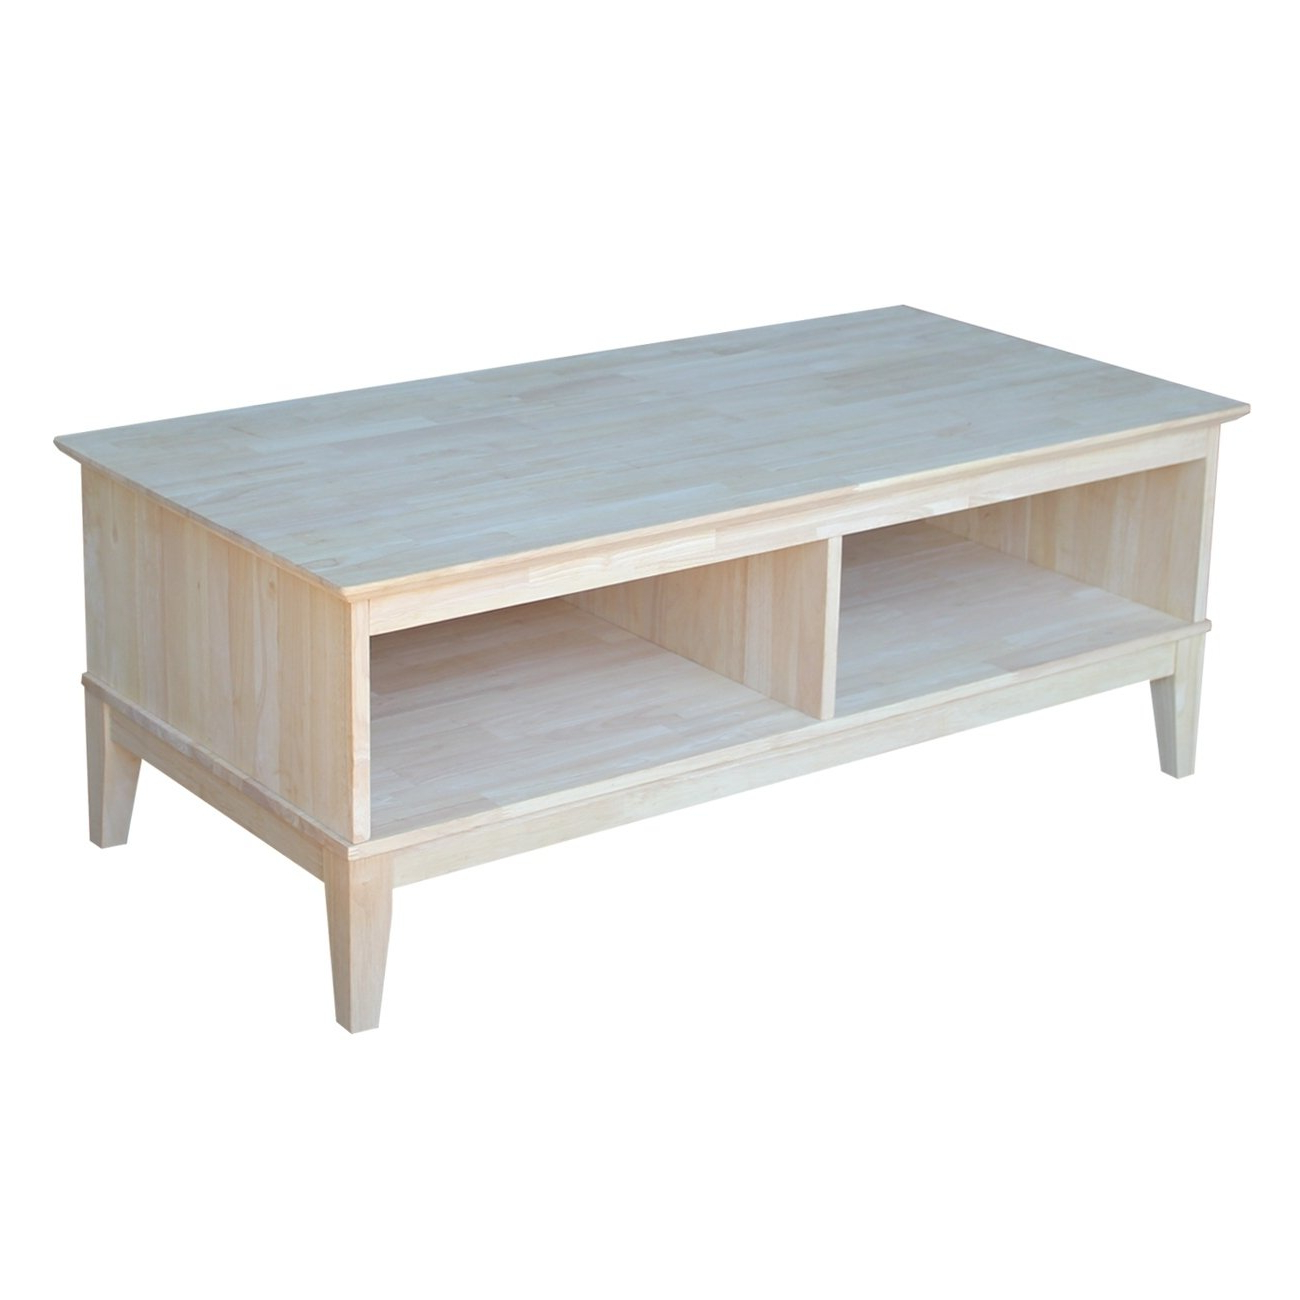 Most Current Shaker Unfinished Solid Parawood Tall Coffee Tables Within Shaker Coffee Table – Includes Divider, Unfinished (View 12 of 20)